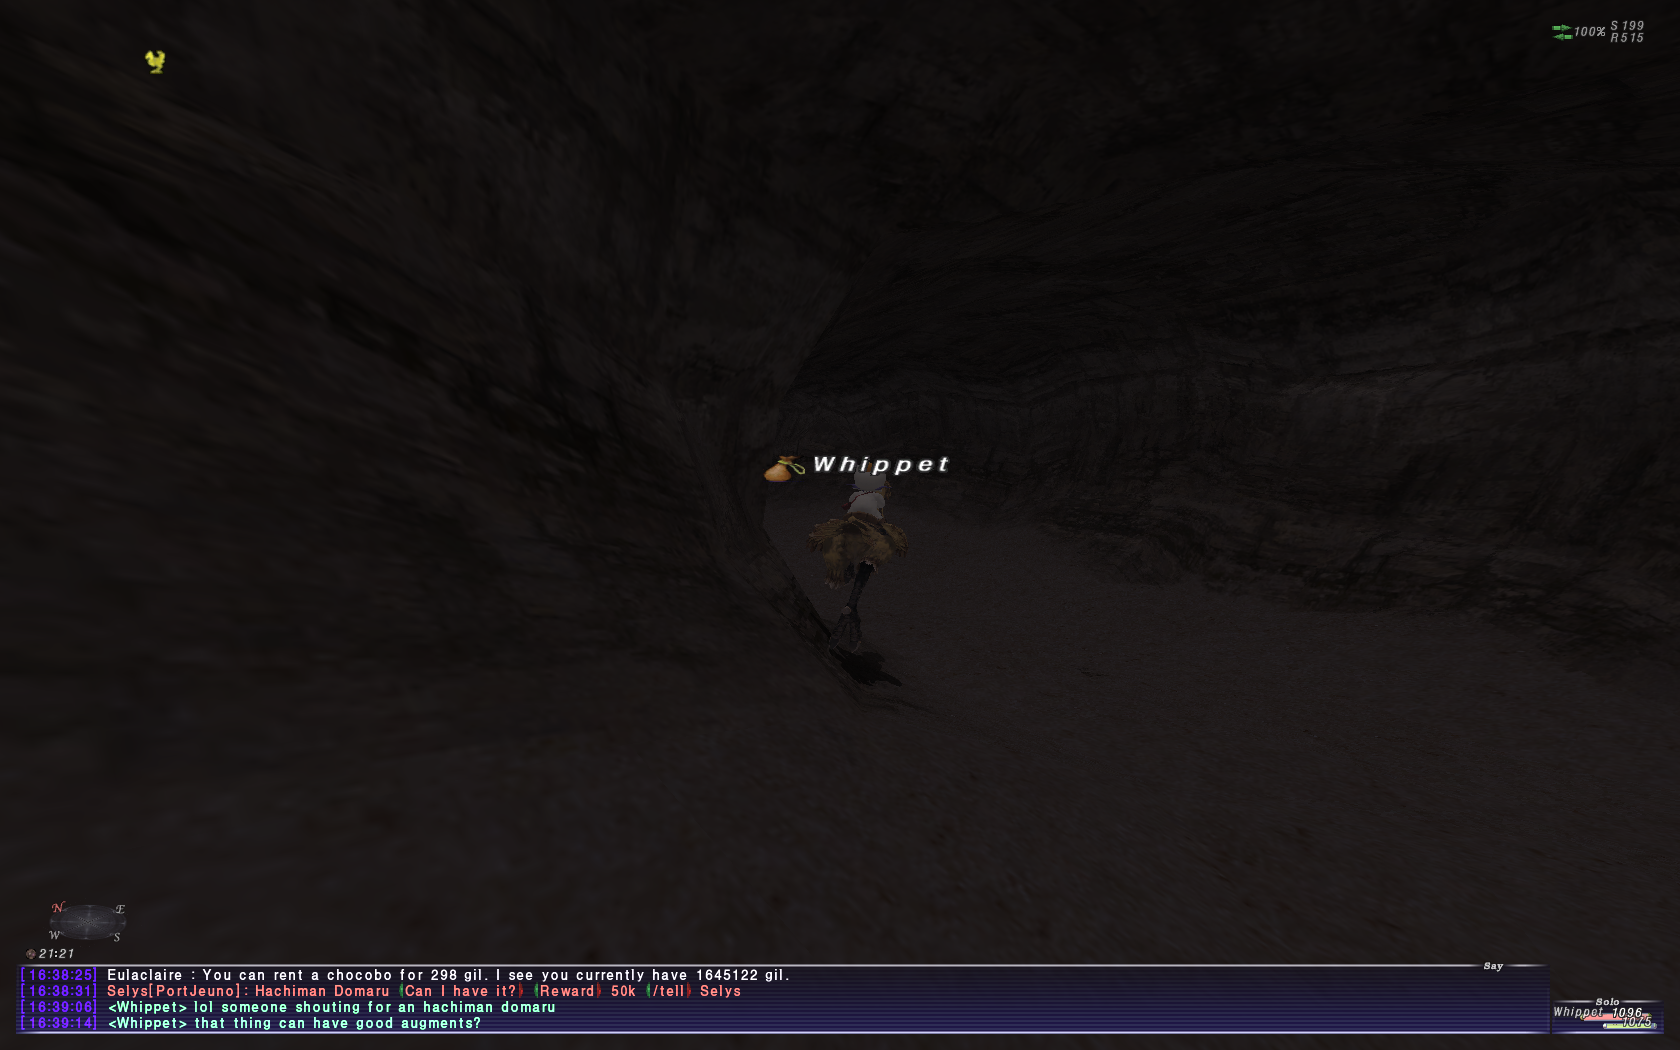 ratatapa ffxi fail from ffxiah randomly this spotted thought screenshot pretty before fucking last xiii time talling posted sure random